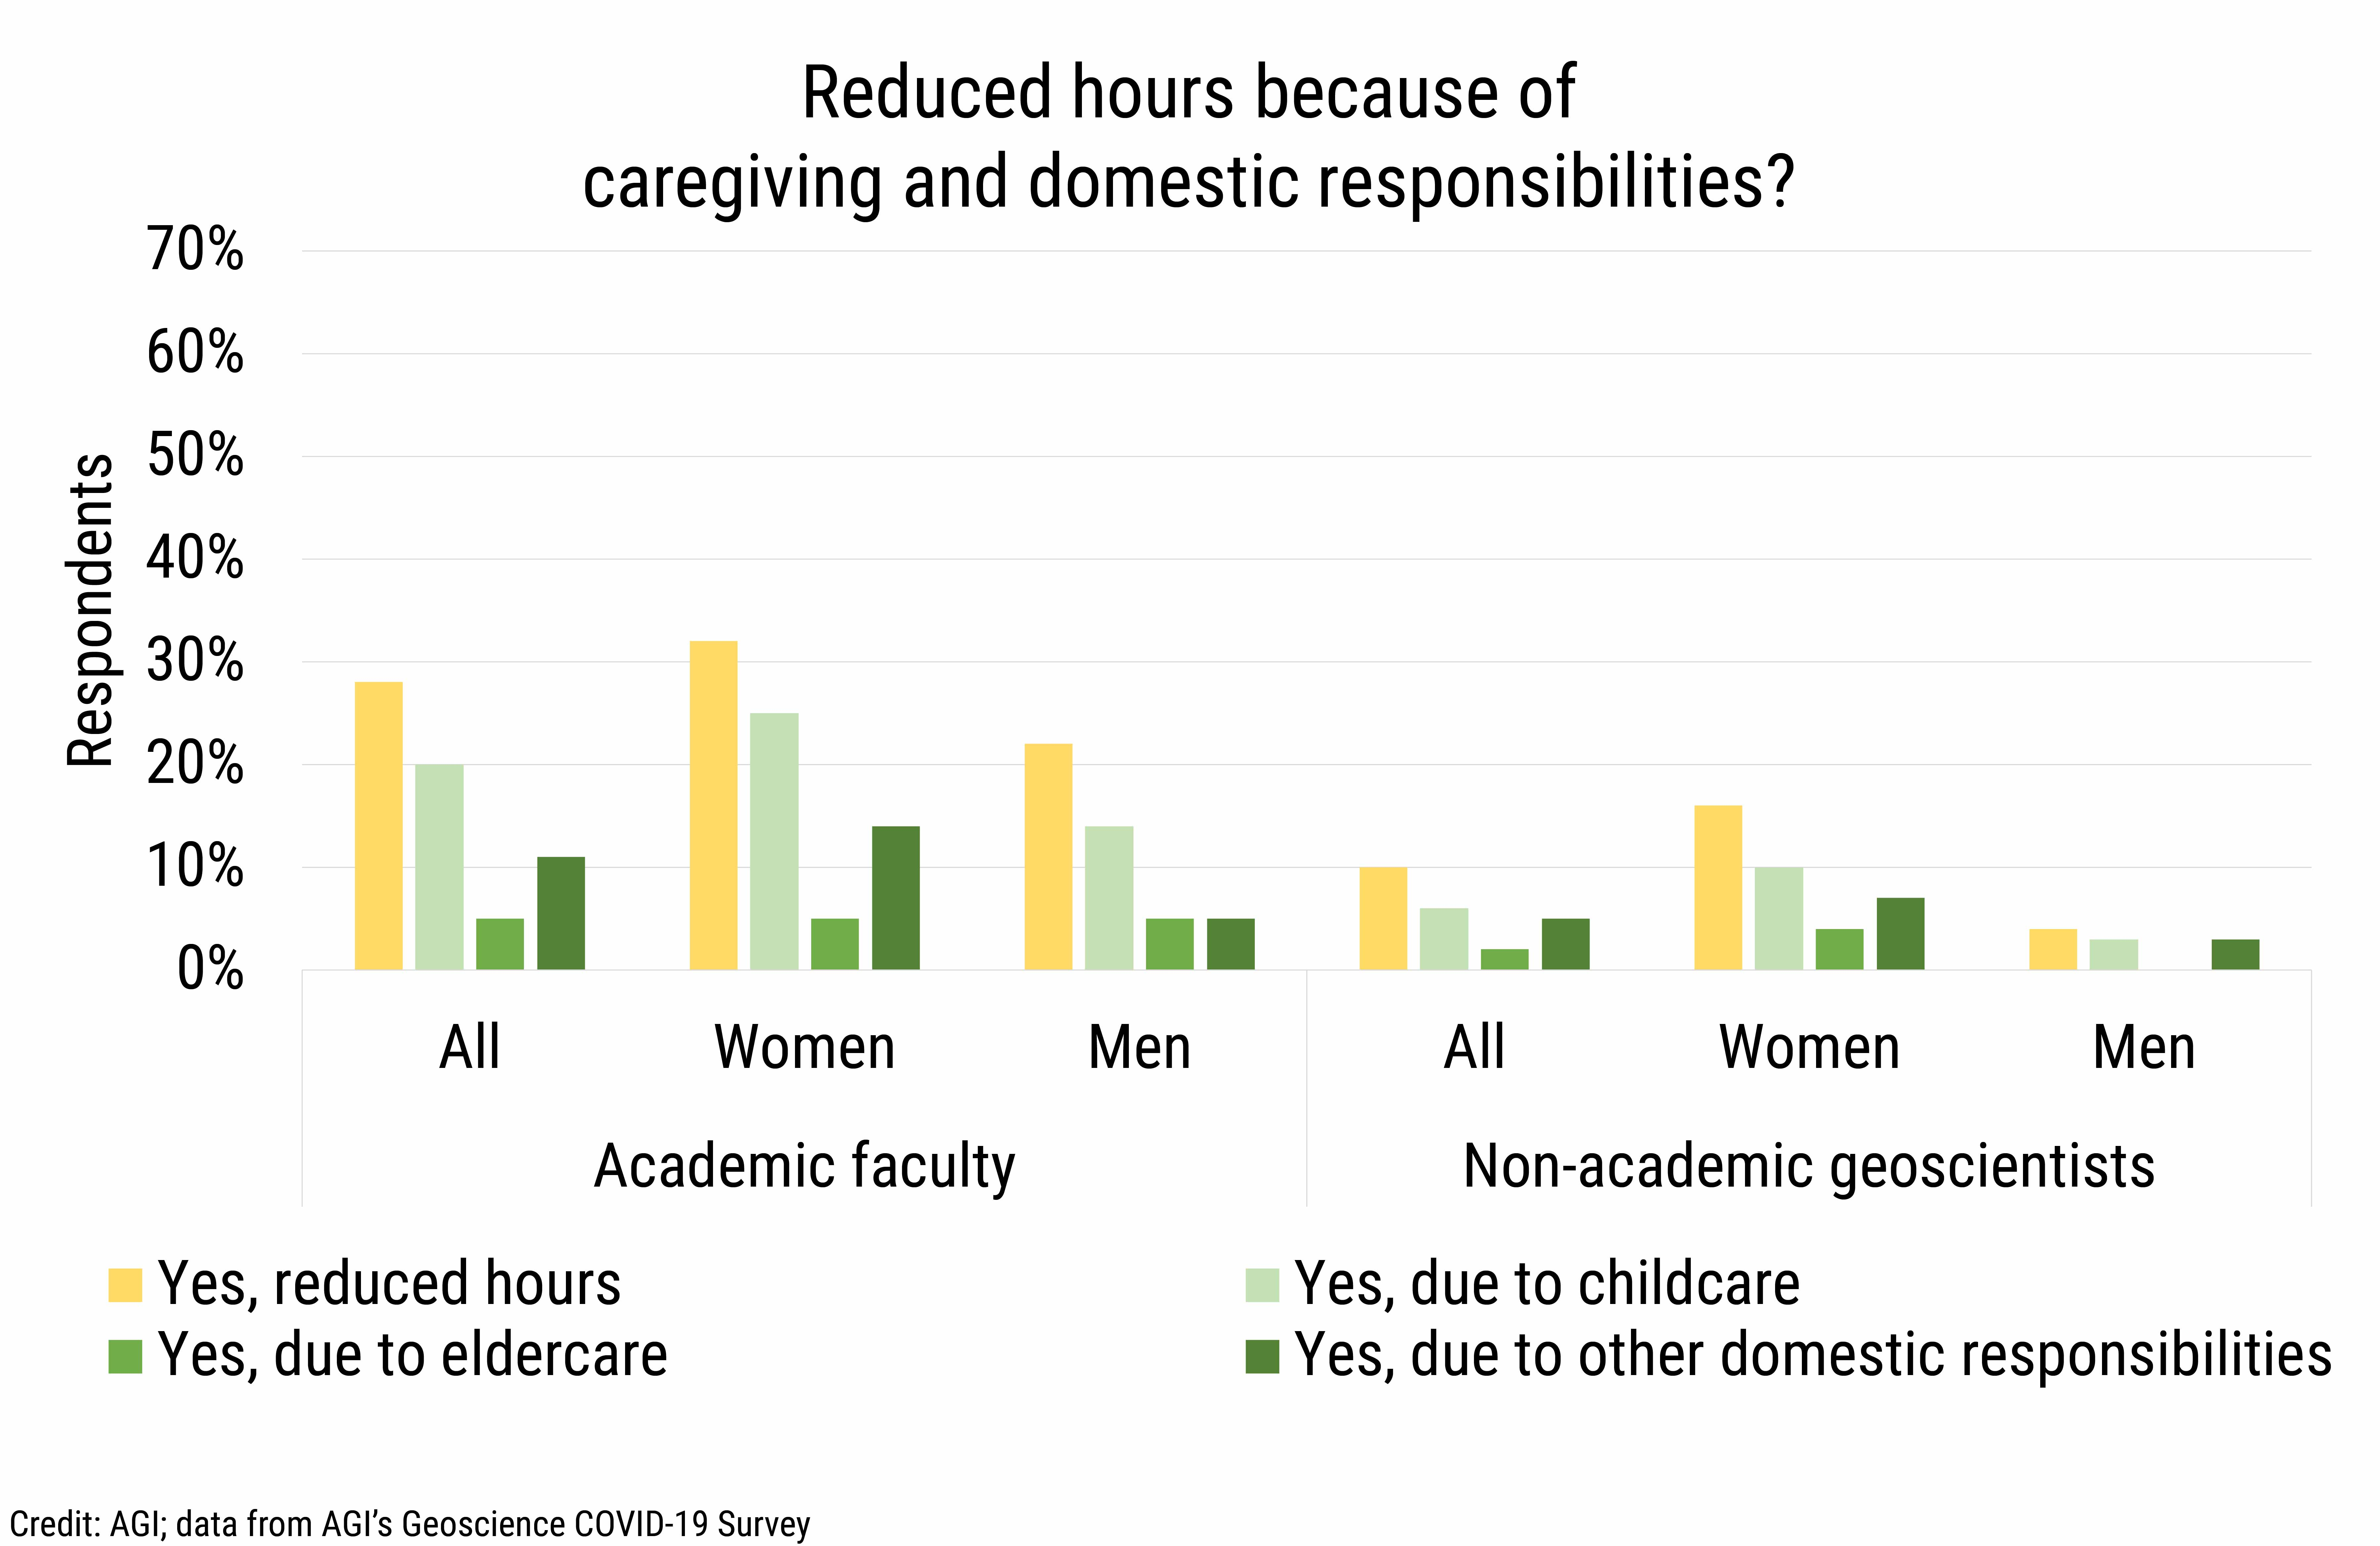 DB_2021-020 chart 02: Reduced hours because of caregiving and domestic responsibilties? (Credit: AGI; data from AGI's Geoscience COVID-19 Survey)